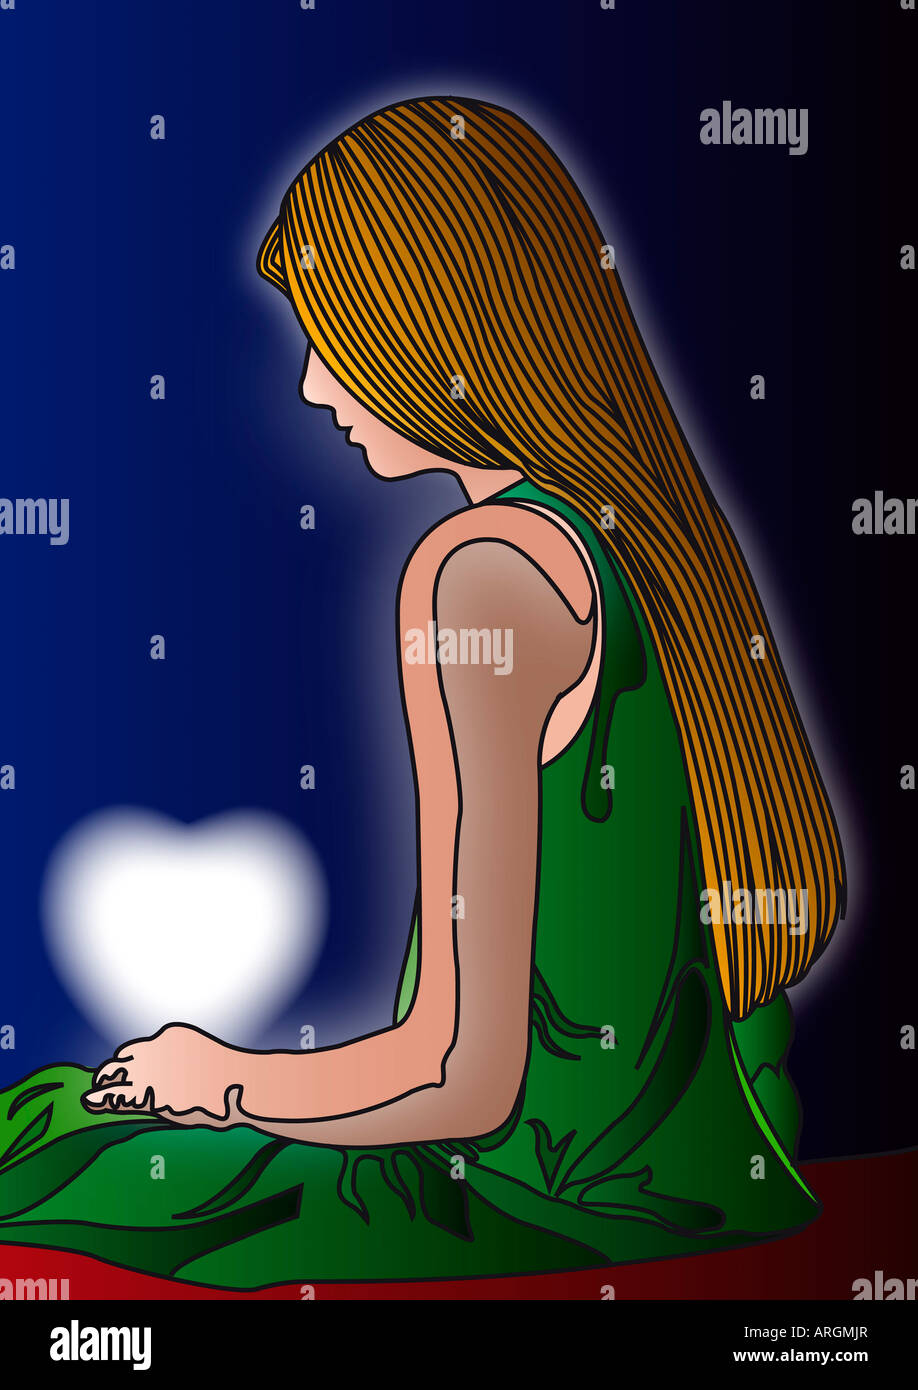 Illustration of Girl with Glowing Heart Stock Photo